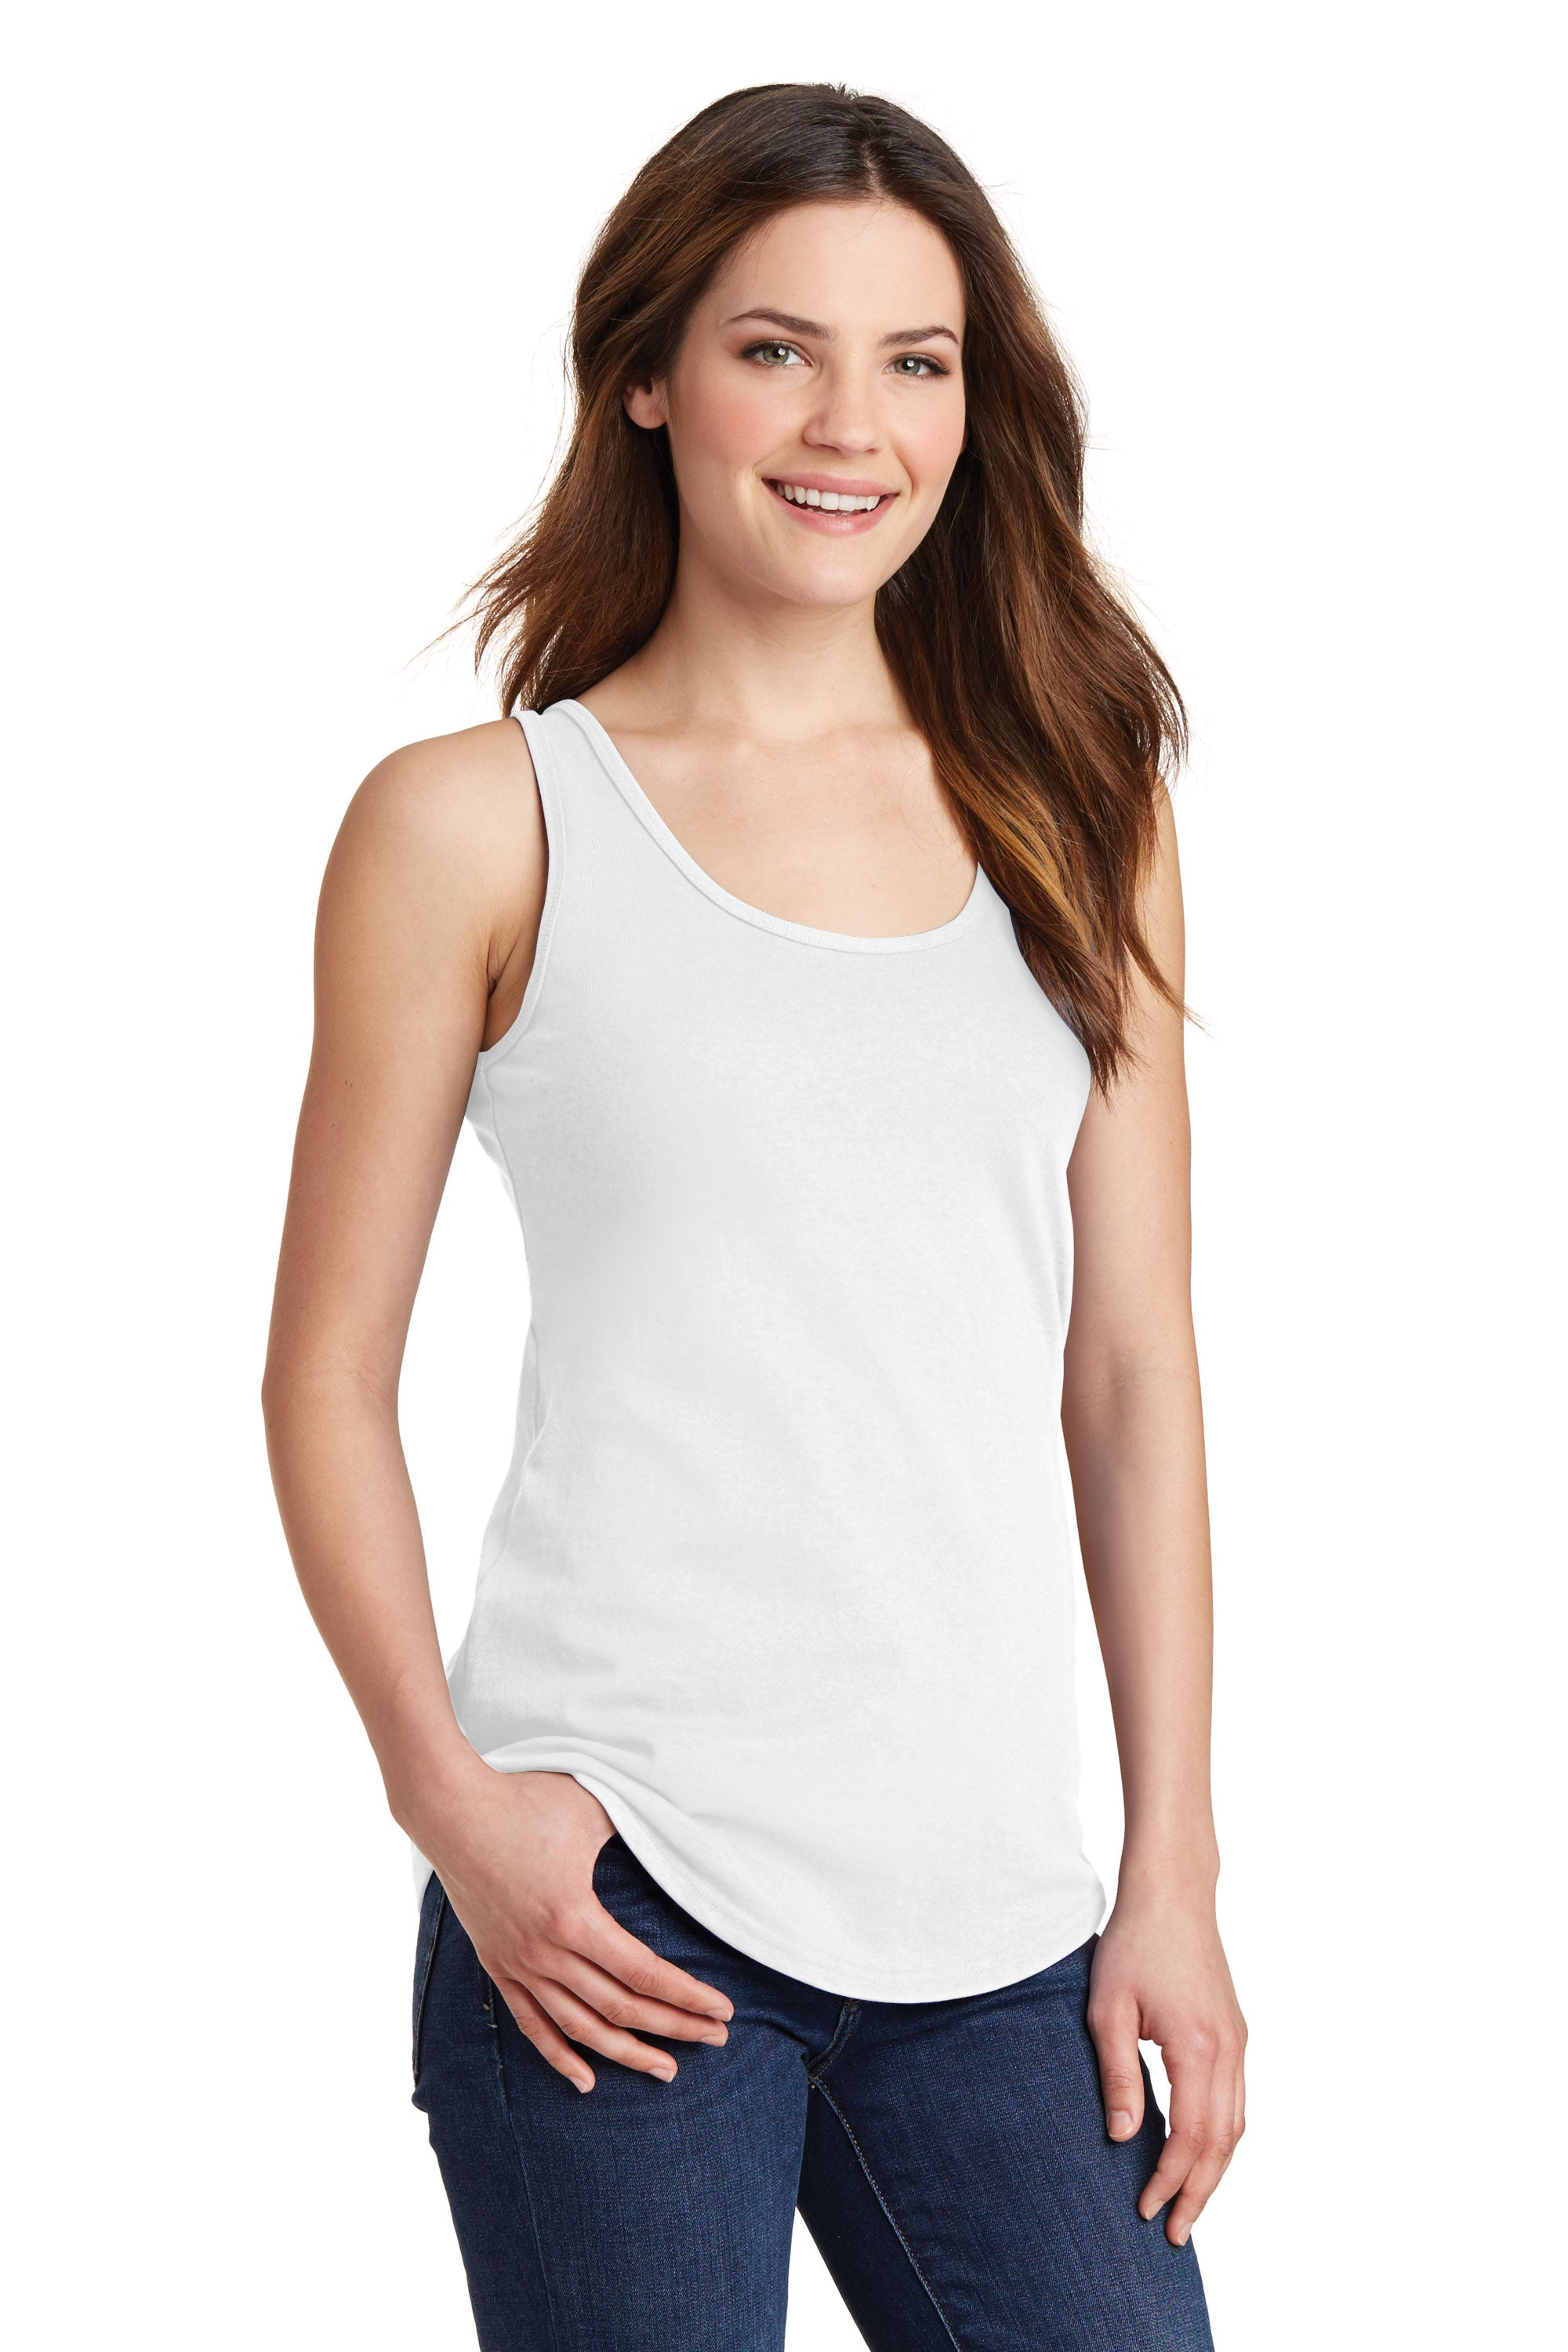 HOT OUT HERE - TEEN GIRL TANK